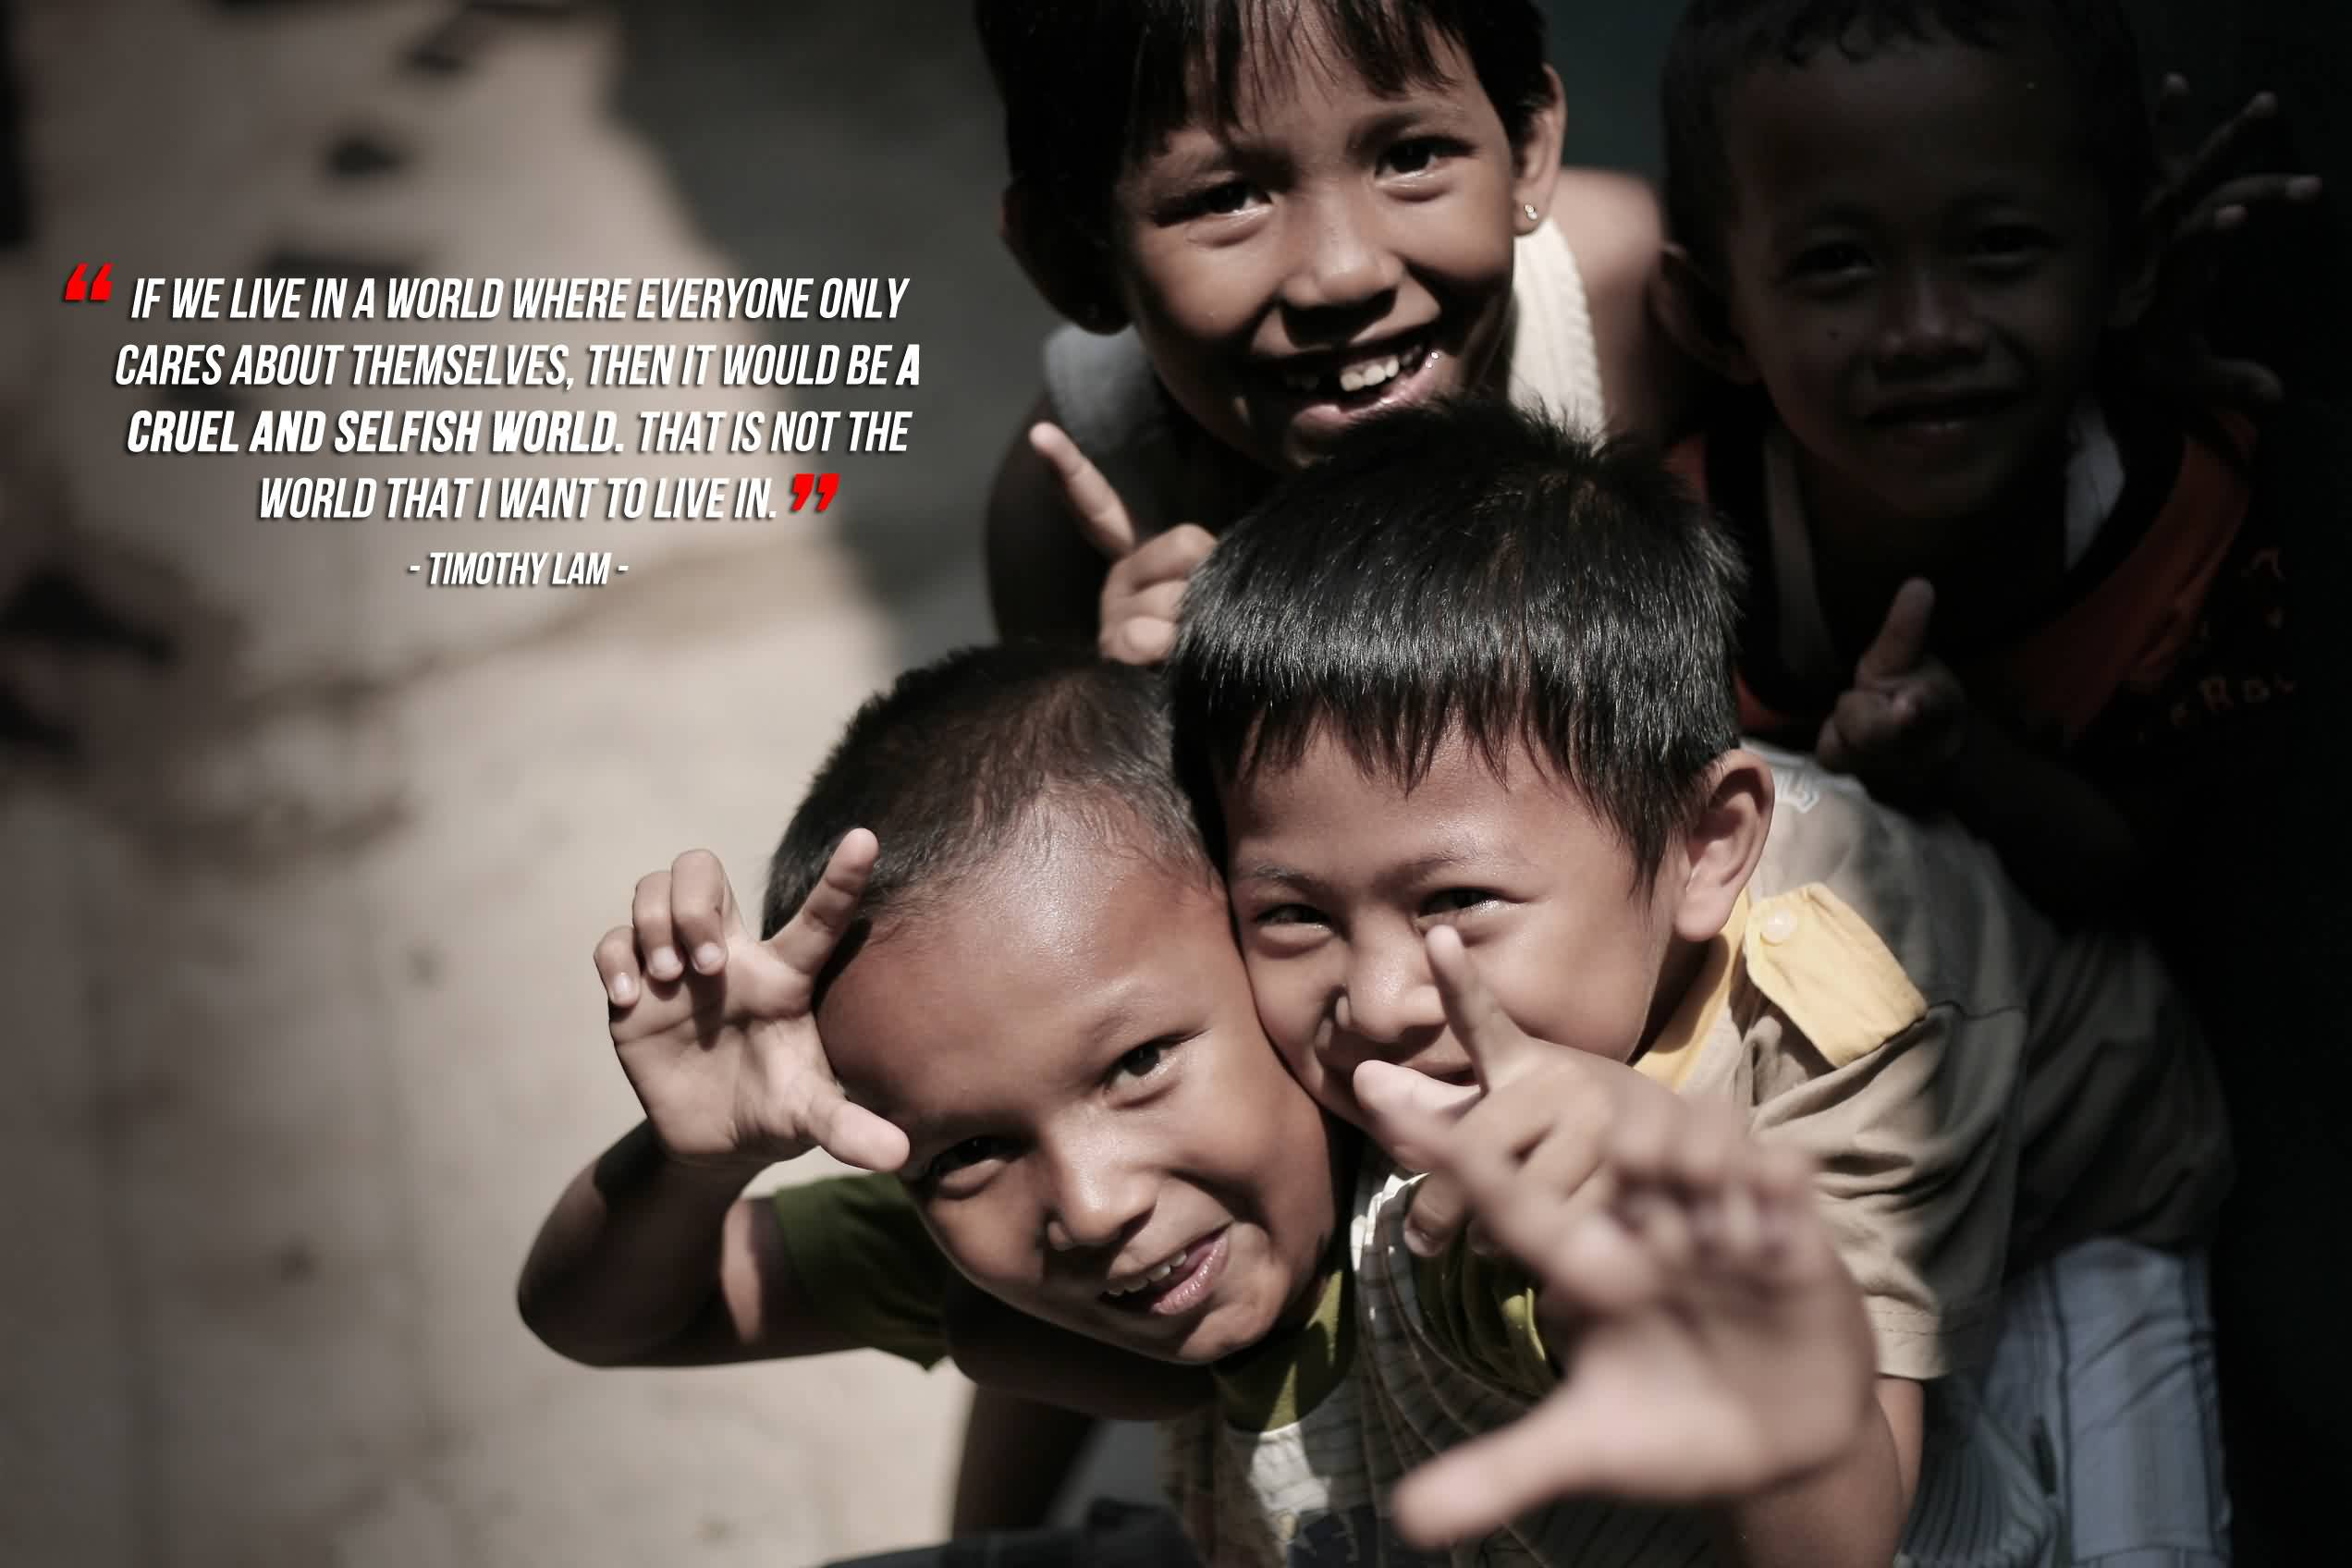 Good charity Quote By Timothy lam~ If we live in a world where everyone only cares about themselves…